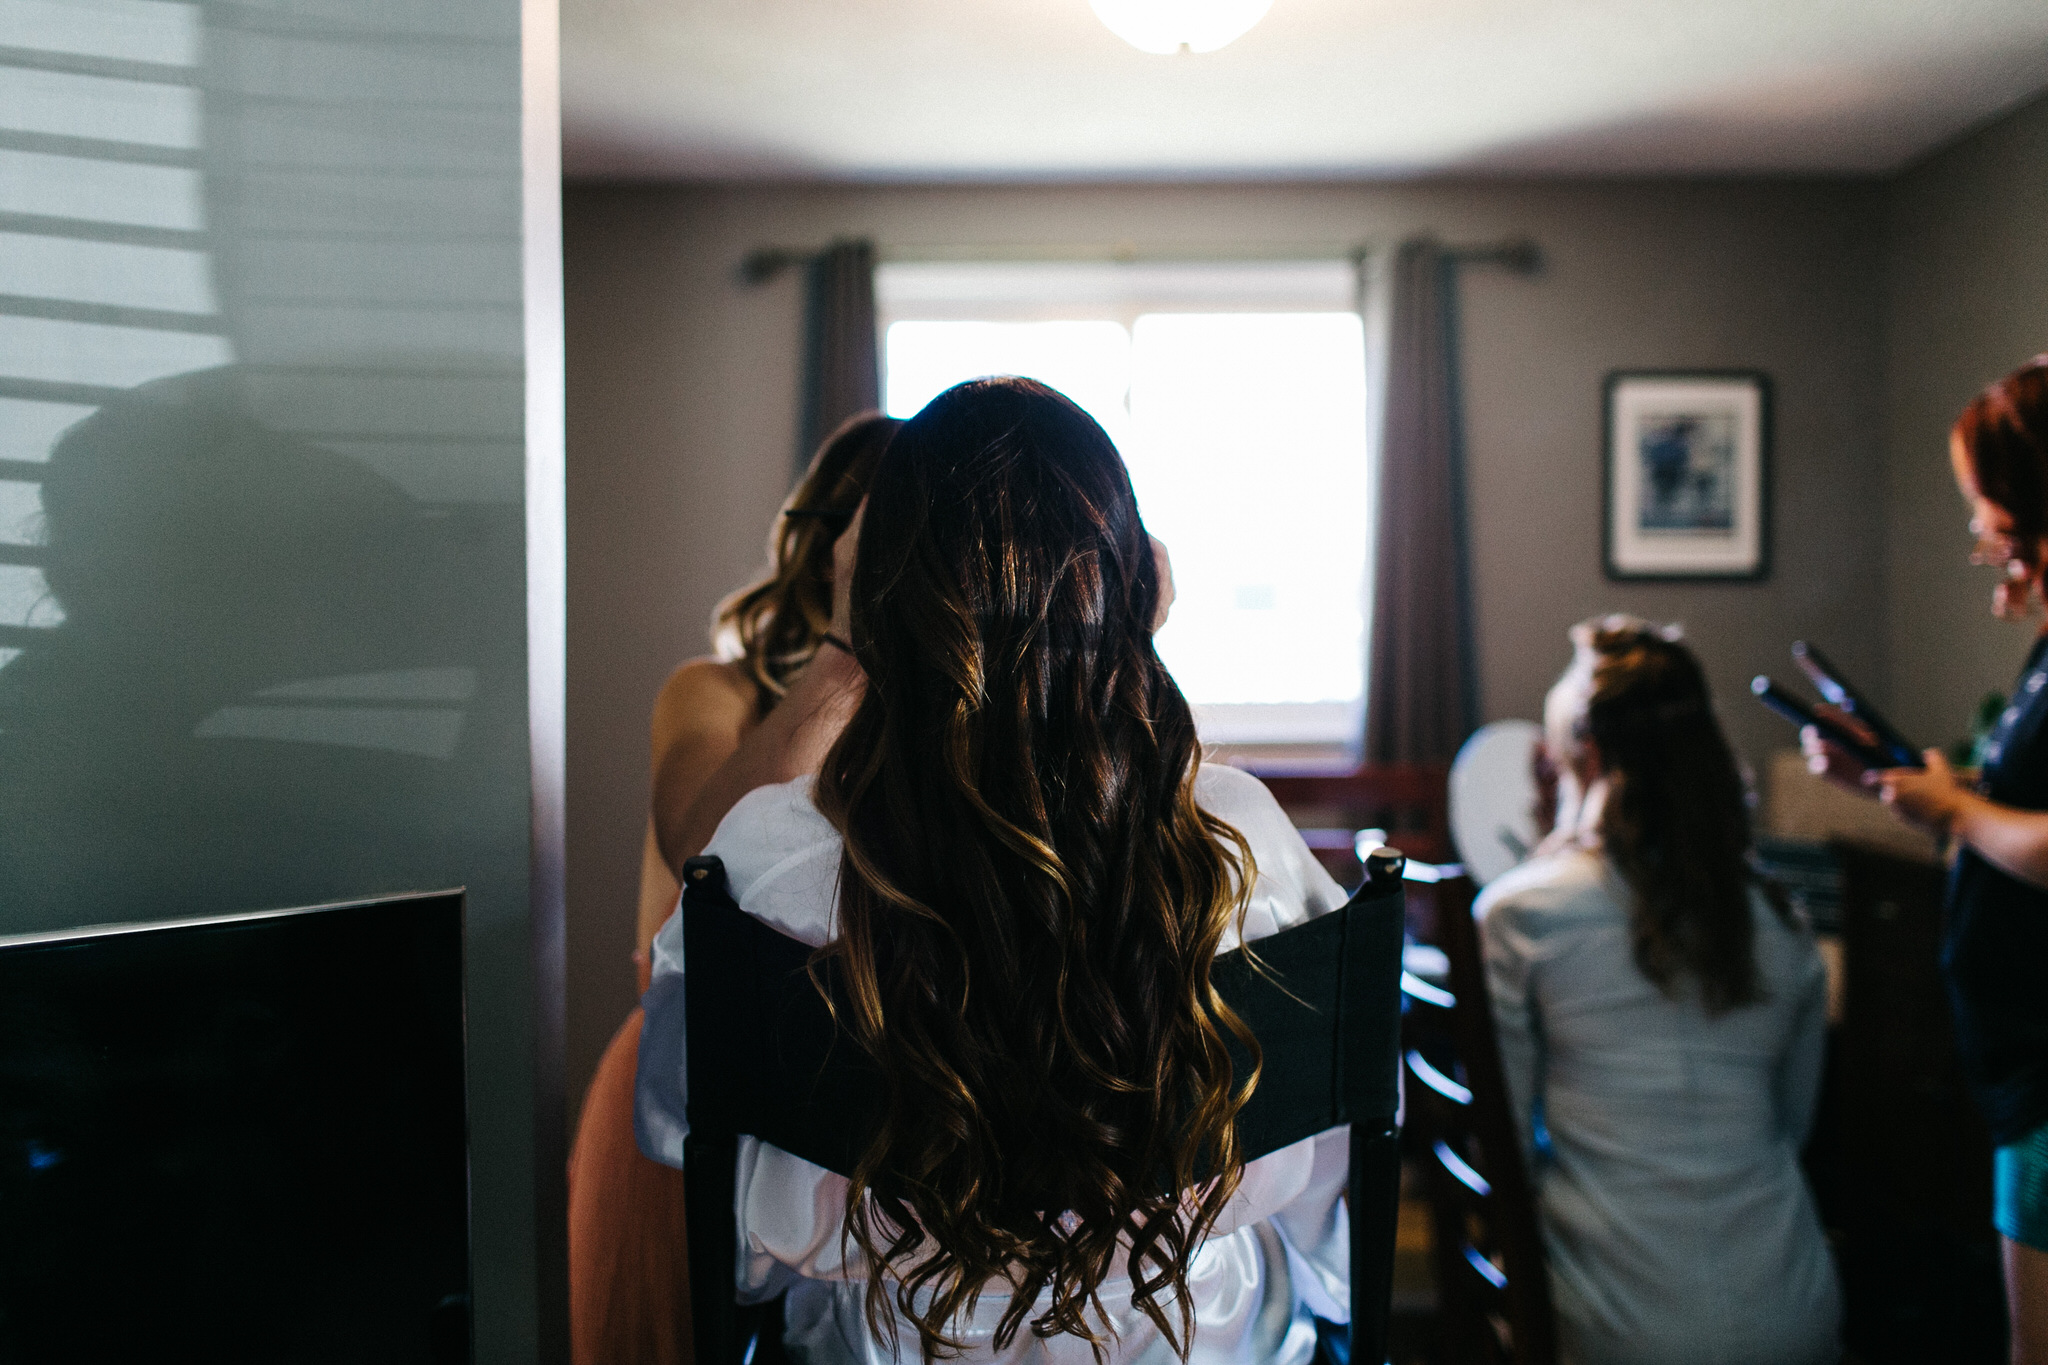 St. George Anglican Oshawa, Toronto wedding photographer, parkwood estates oshawa, bride details, bride getting ready